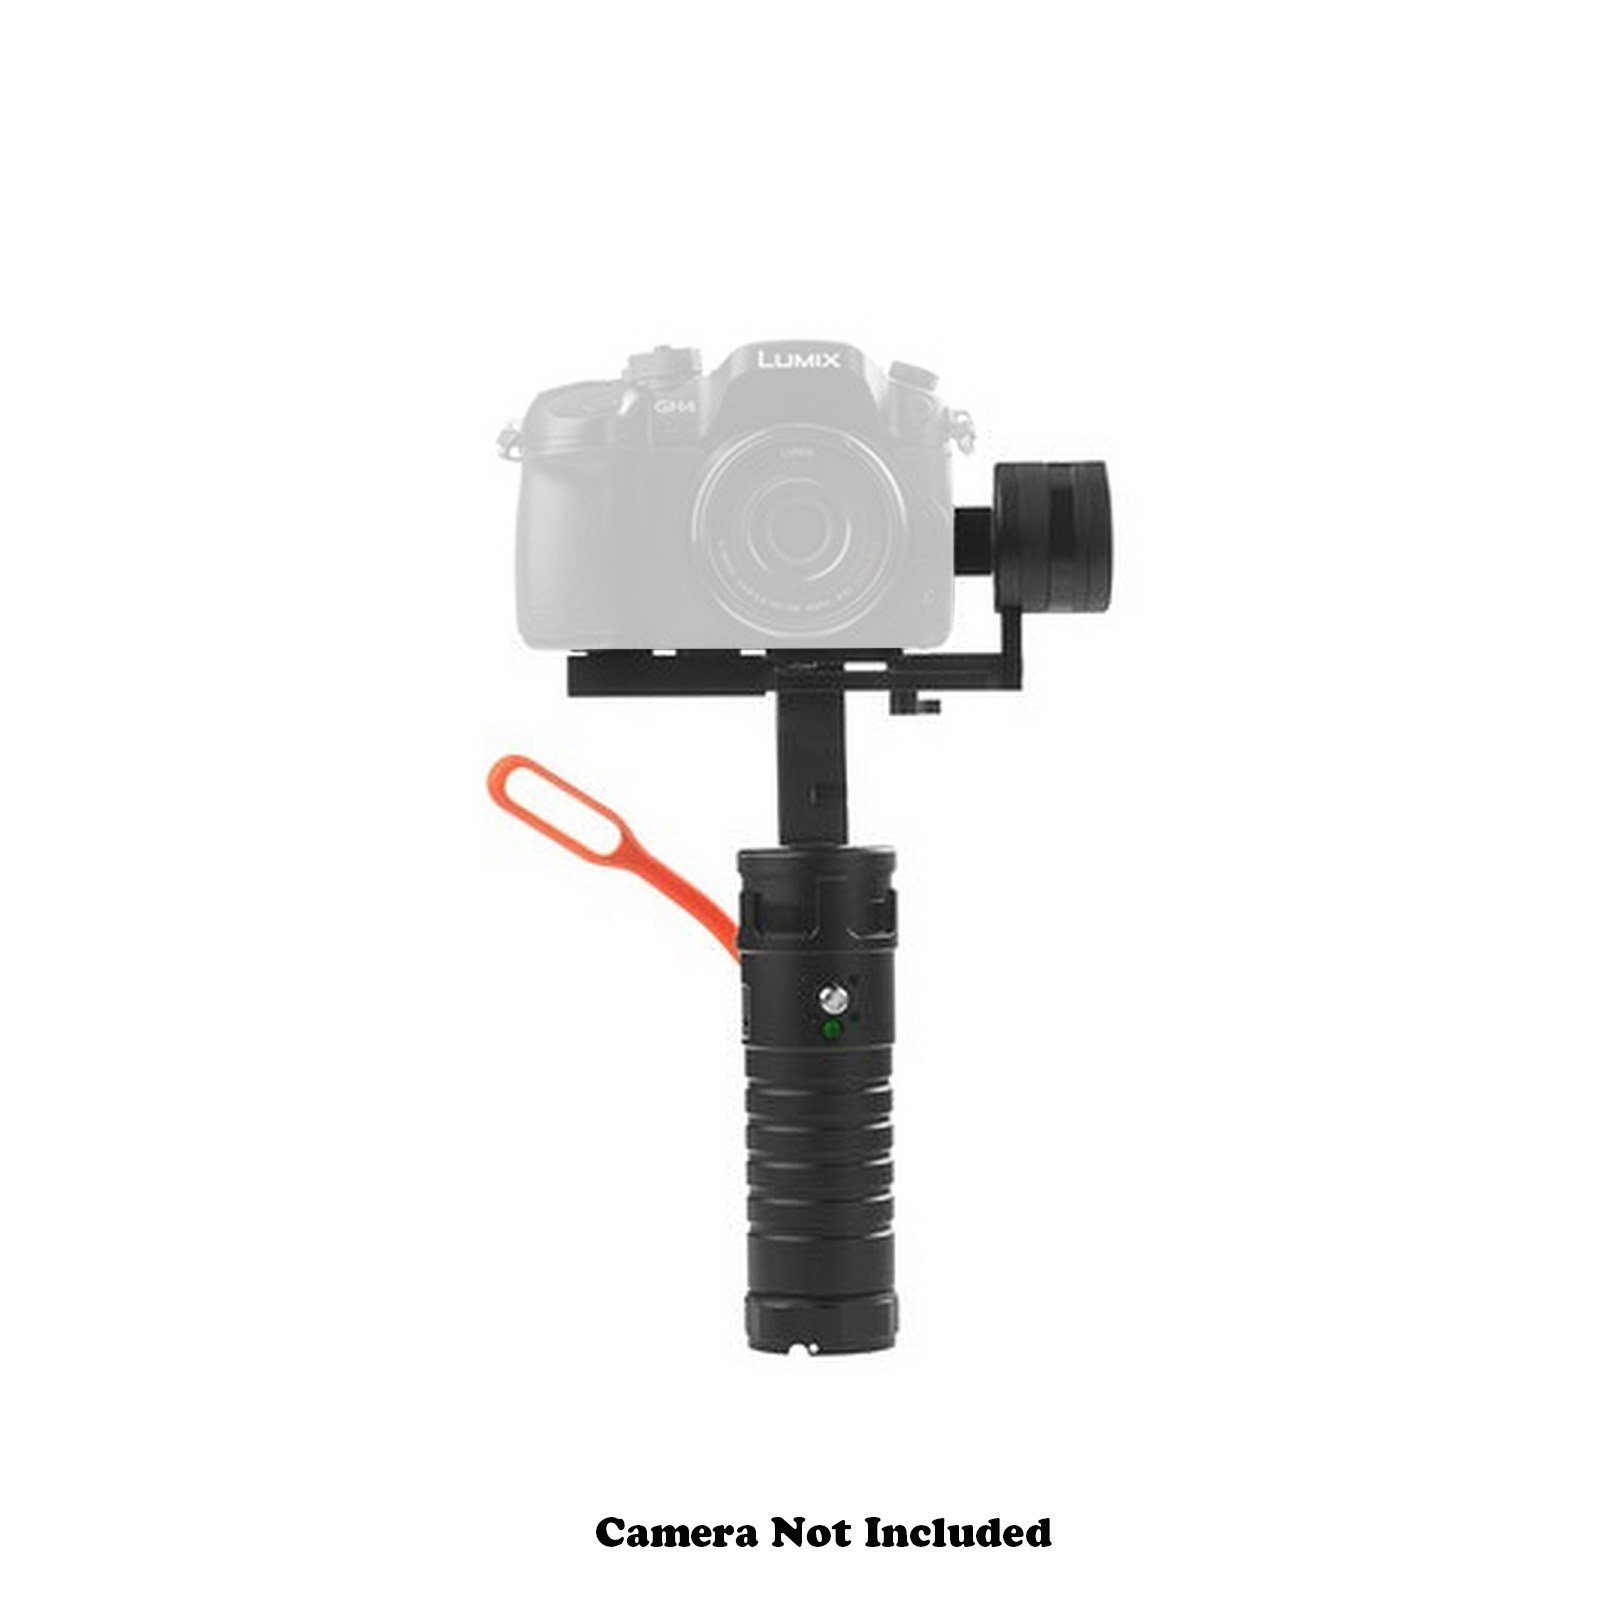 iKan Beholder MS1 3-Axis Motorized Gimbal Stabilizer for Mirrorless Cameras - Bundle With iKan Beholder Battery Set, Microfiber Cleaning Cloth